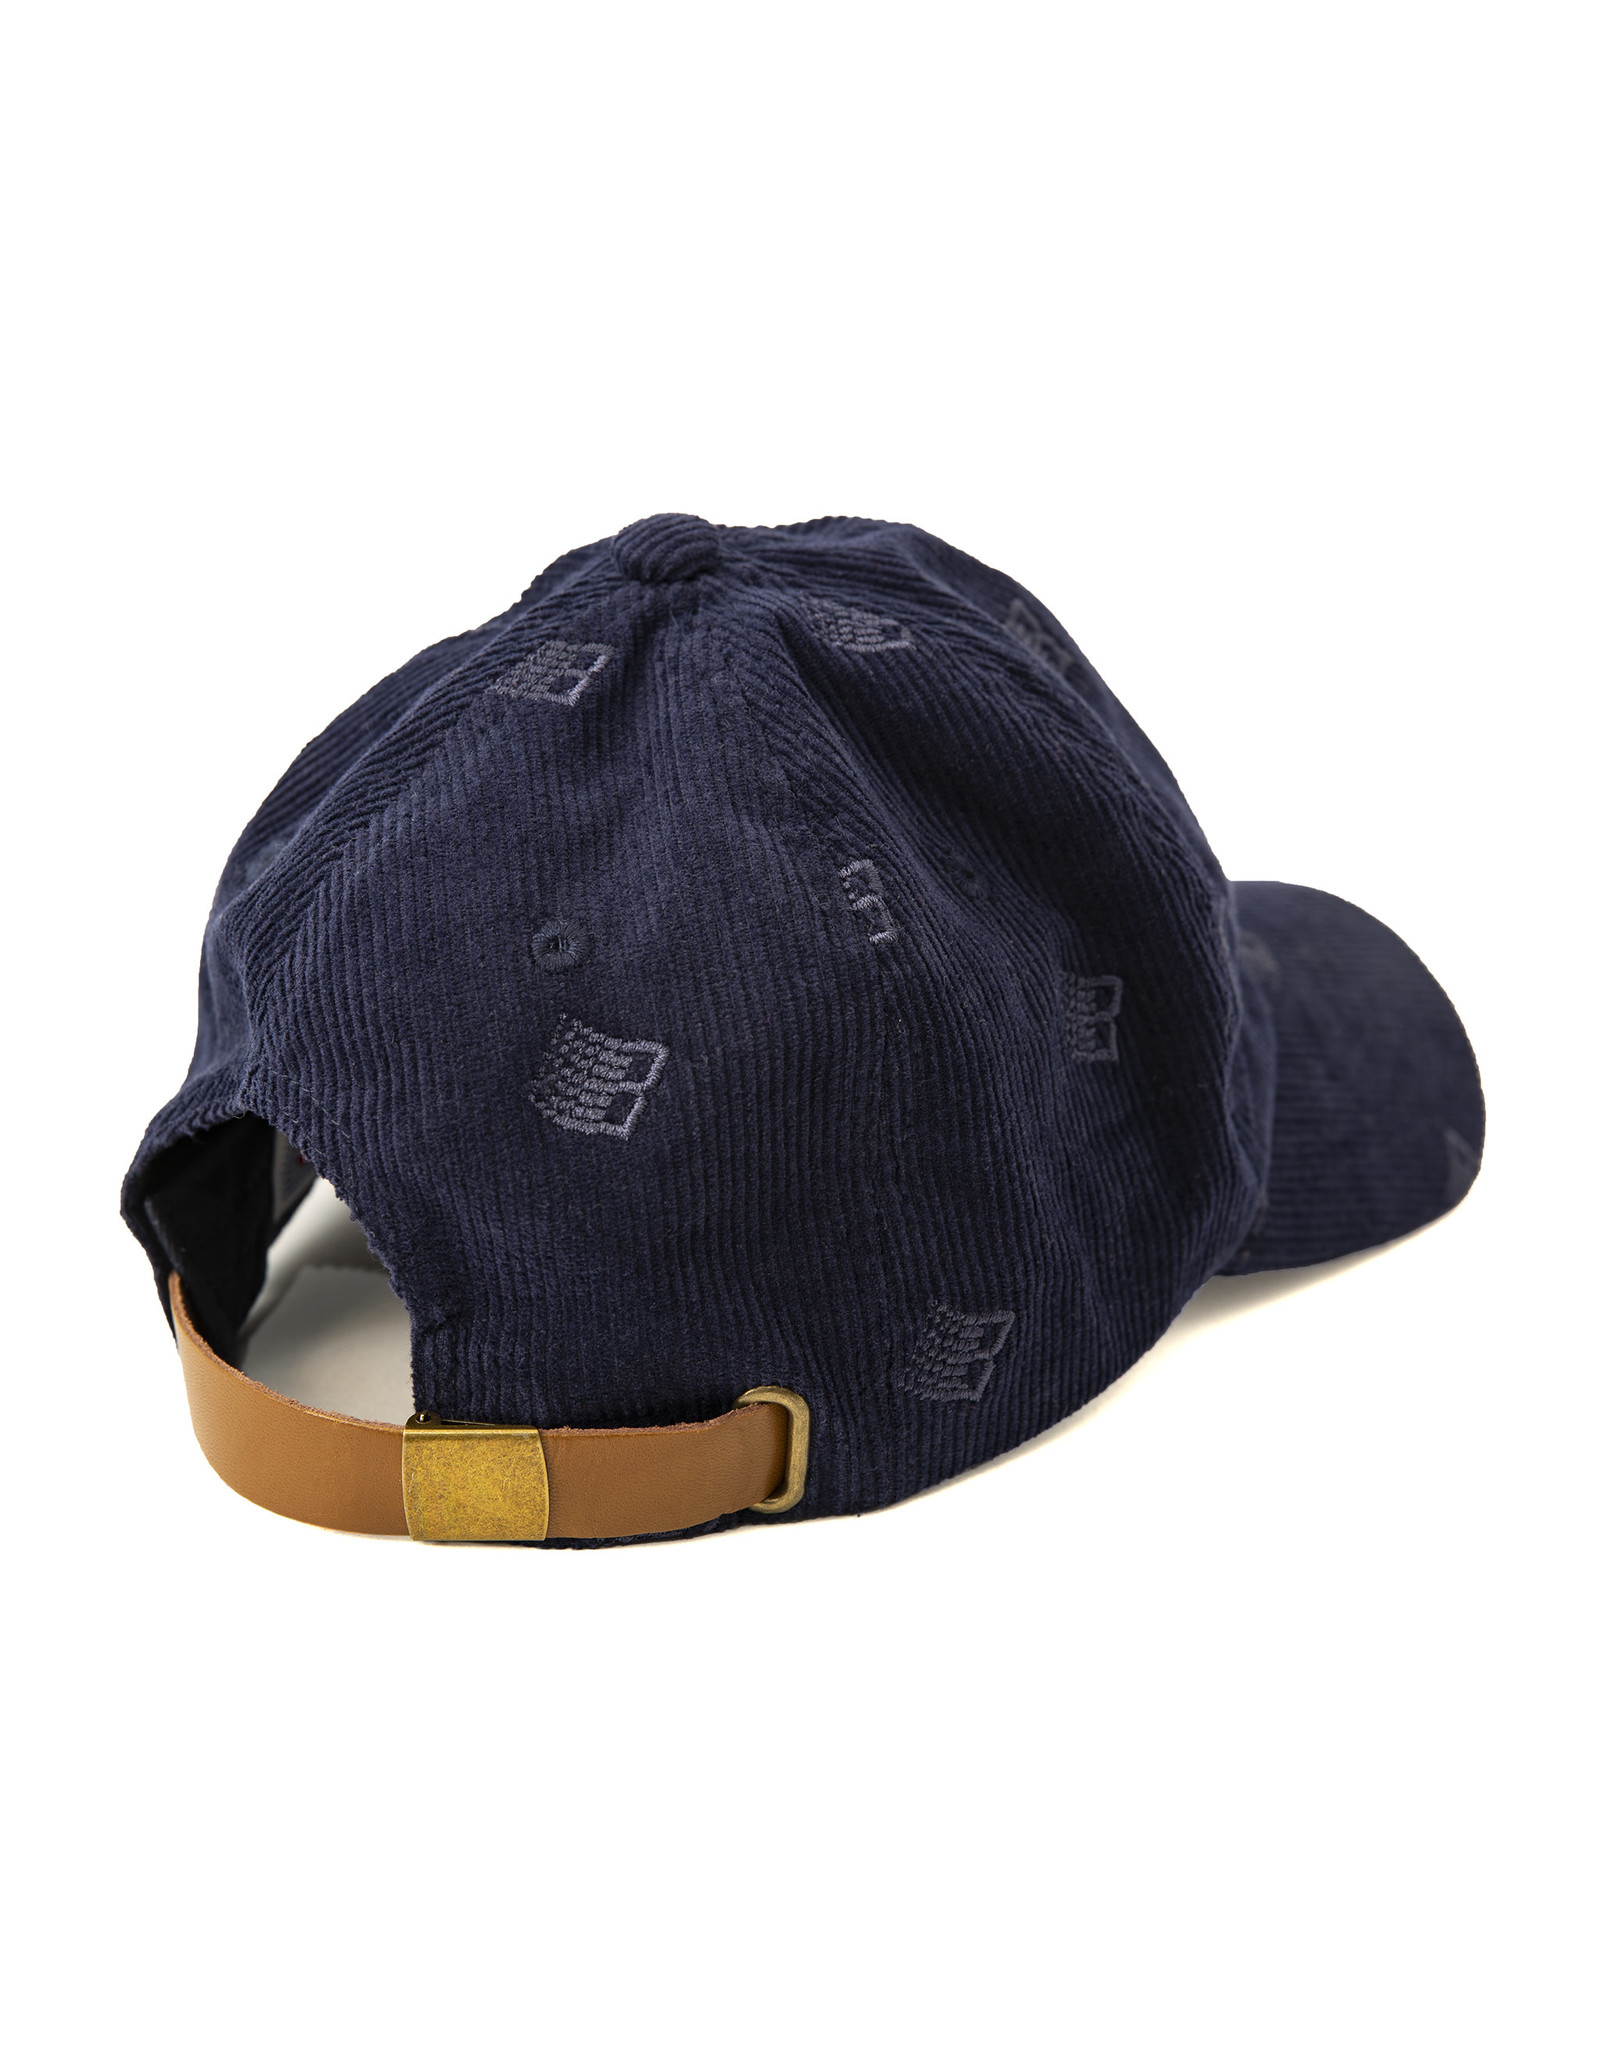 Bronze56K Allover Embroidered Cap - Navy